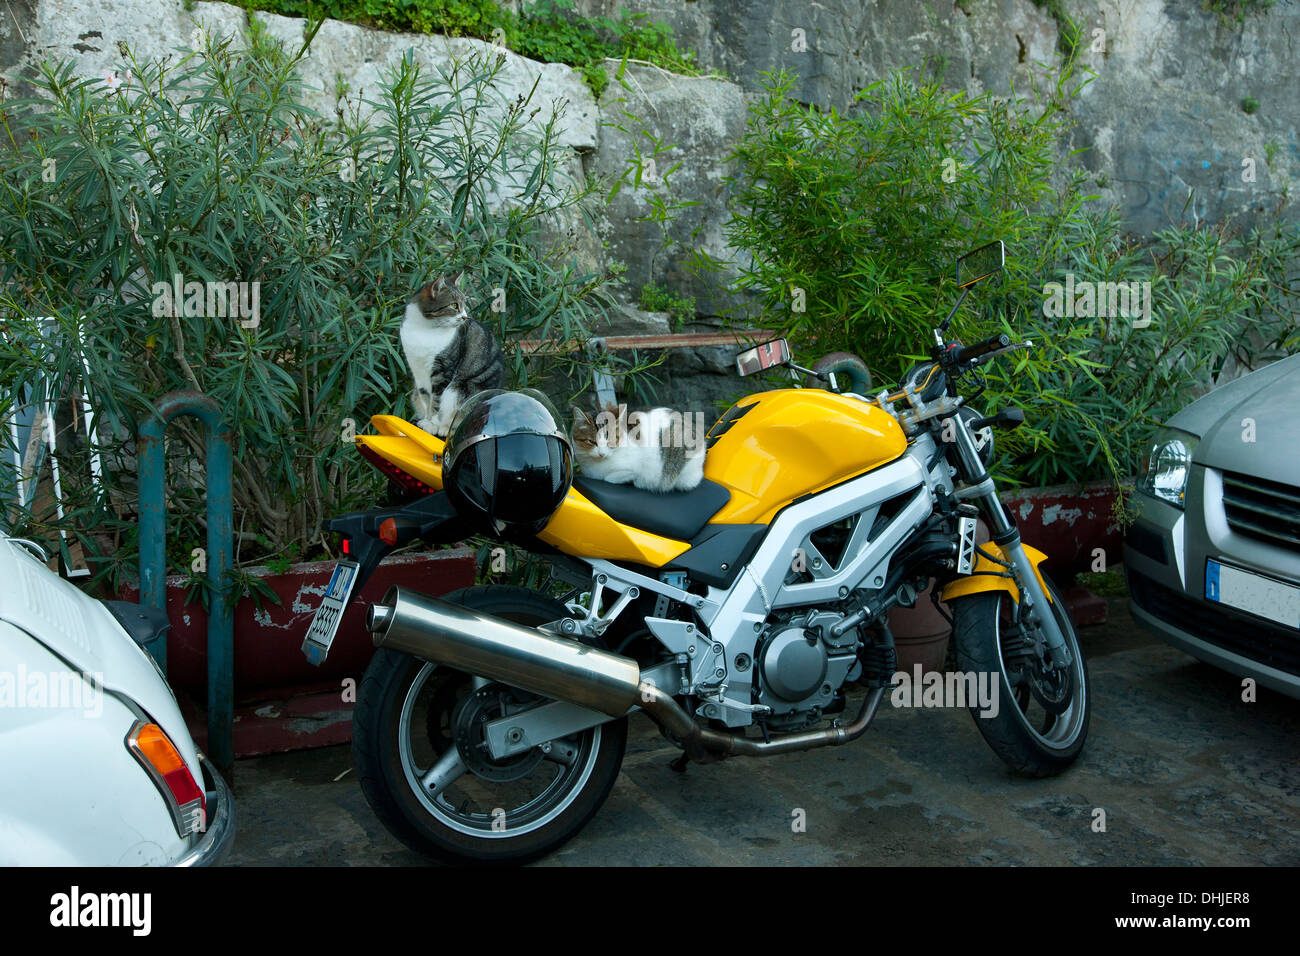 Cats sit on a yellow motorcycle in Sorrento, Italy. - Stock Image